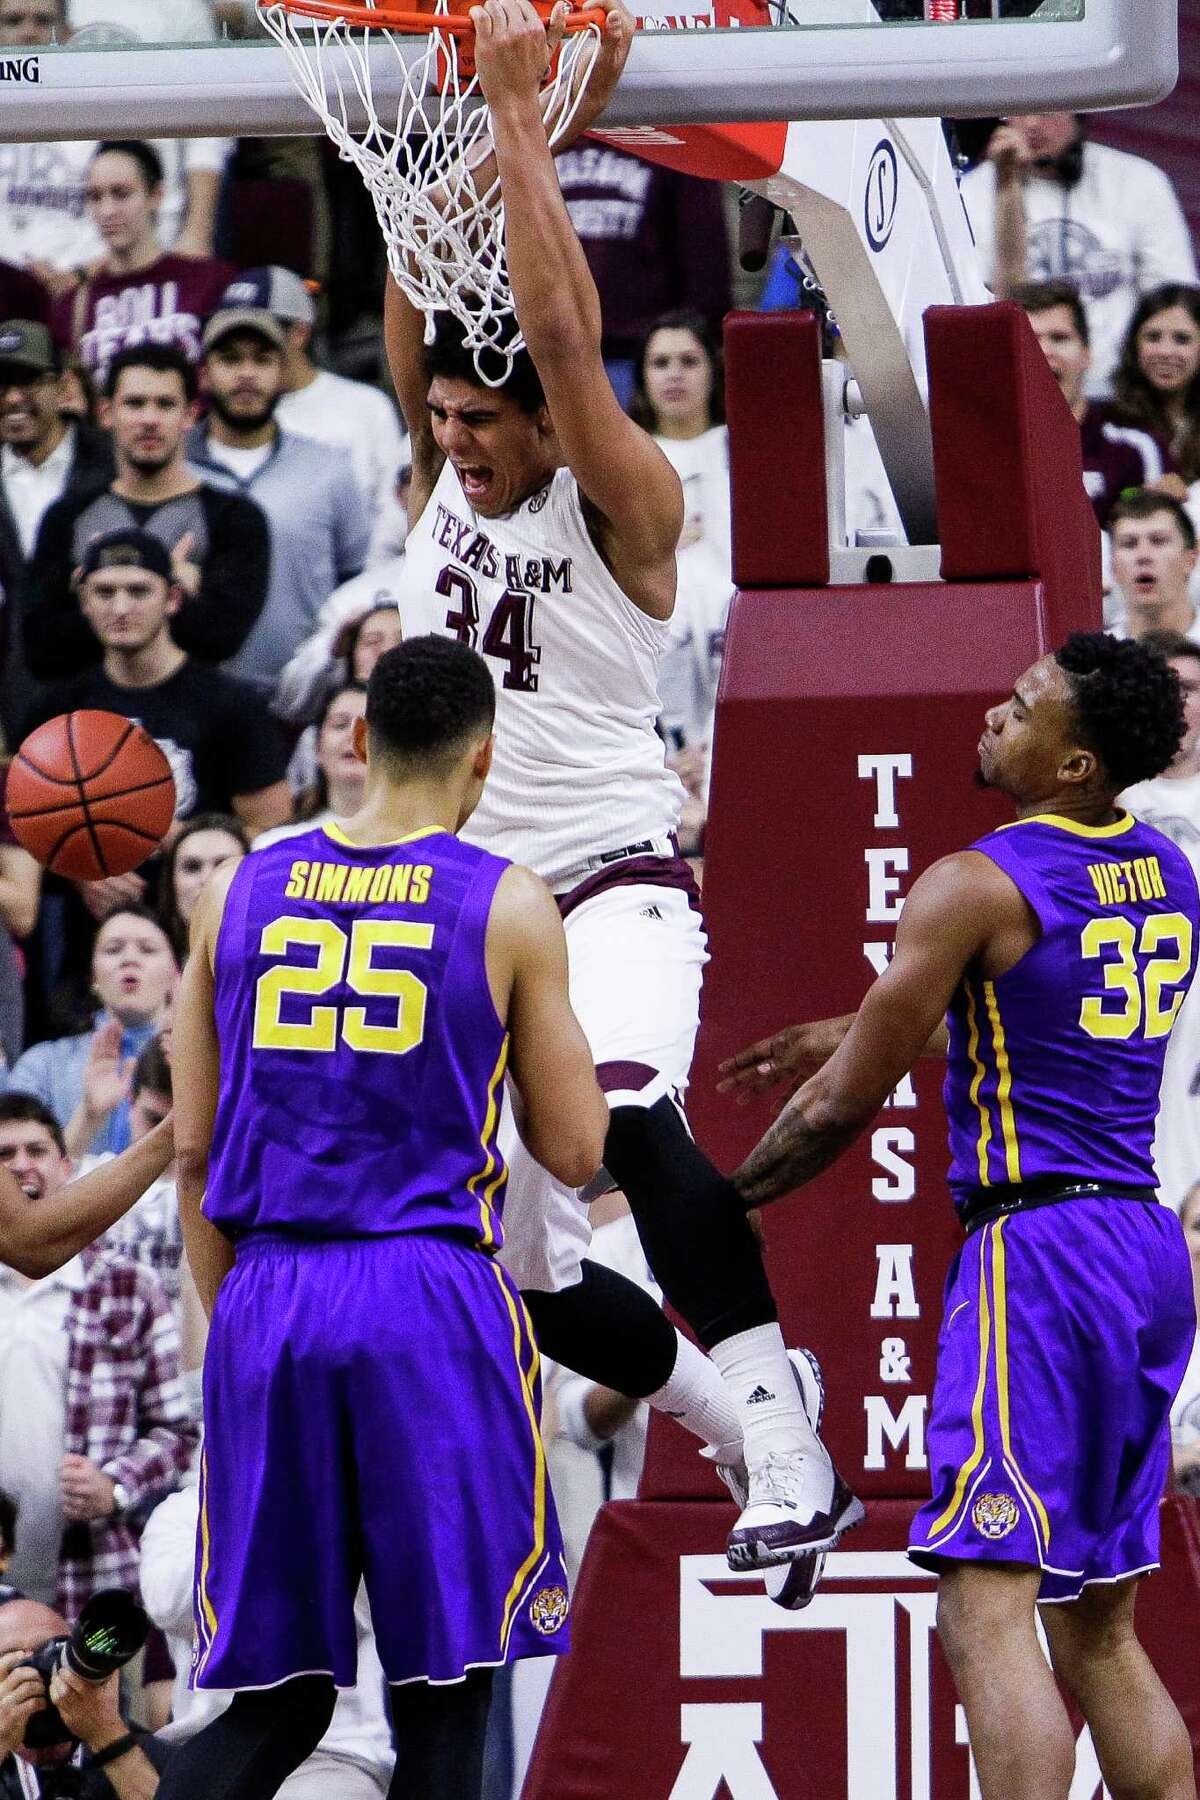 Texas A&M Aggies center Tyler Davis (34) dunks the ball as Texas A&M takes on LSU at Reed Arena Tuesday, Jan. 19, 2016, in College Station.